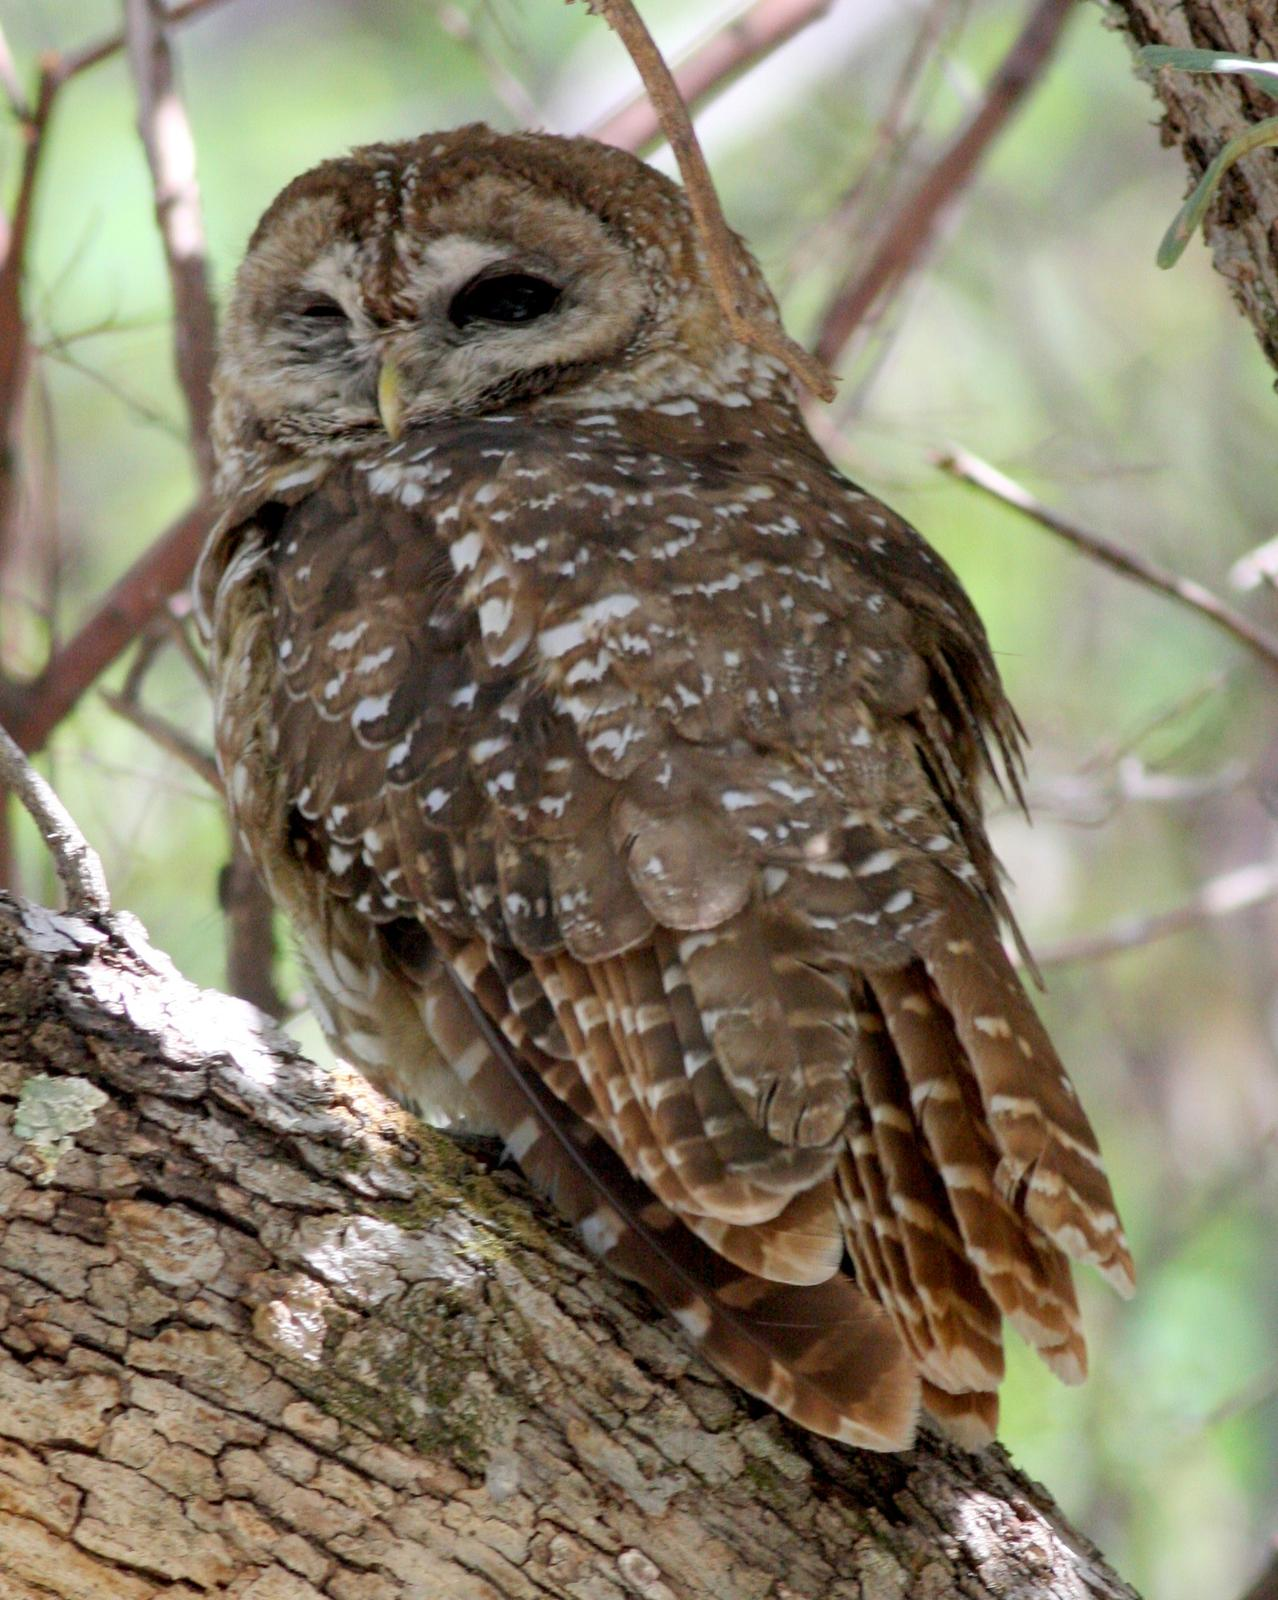 Spotted Owl Photo by Nate Swick